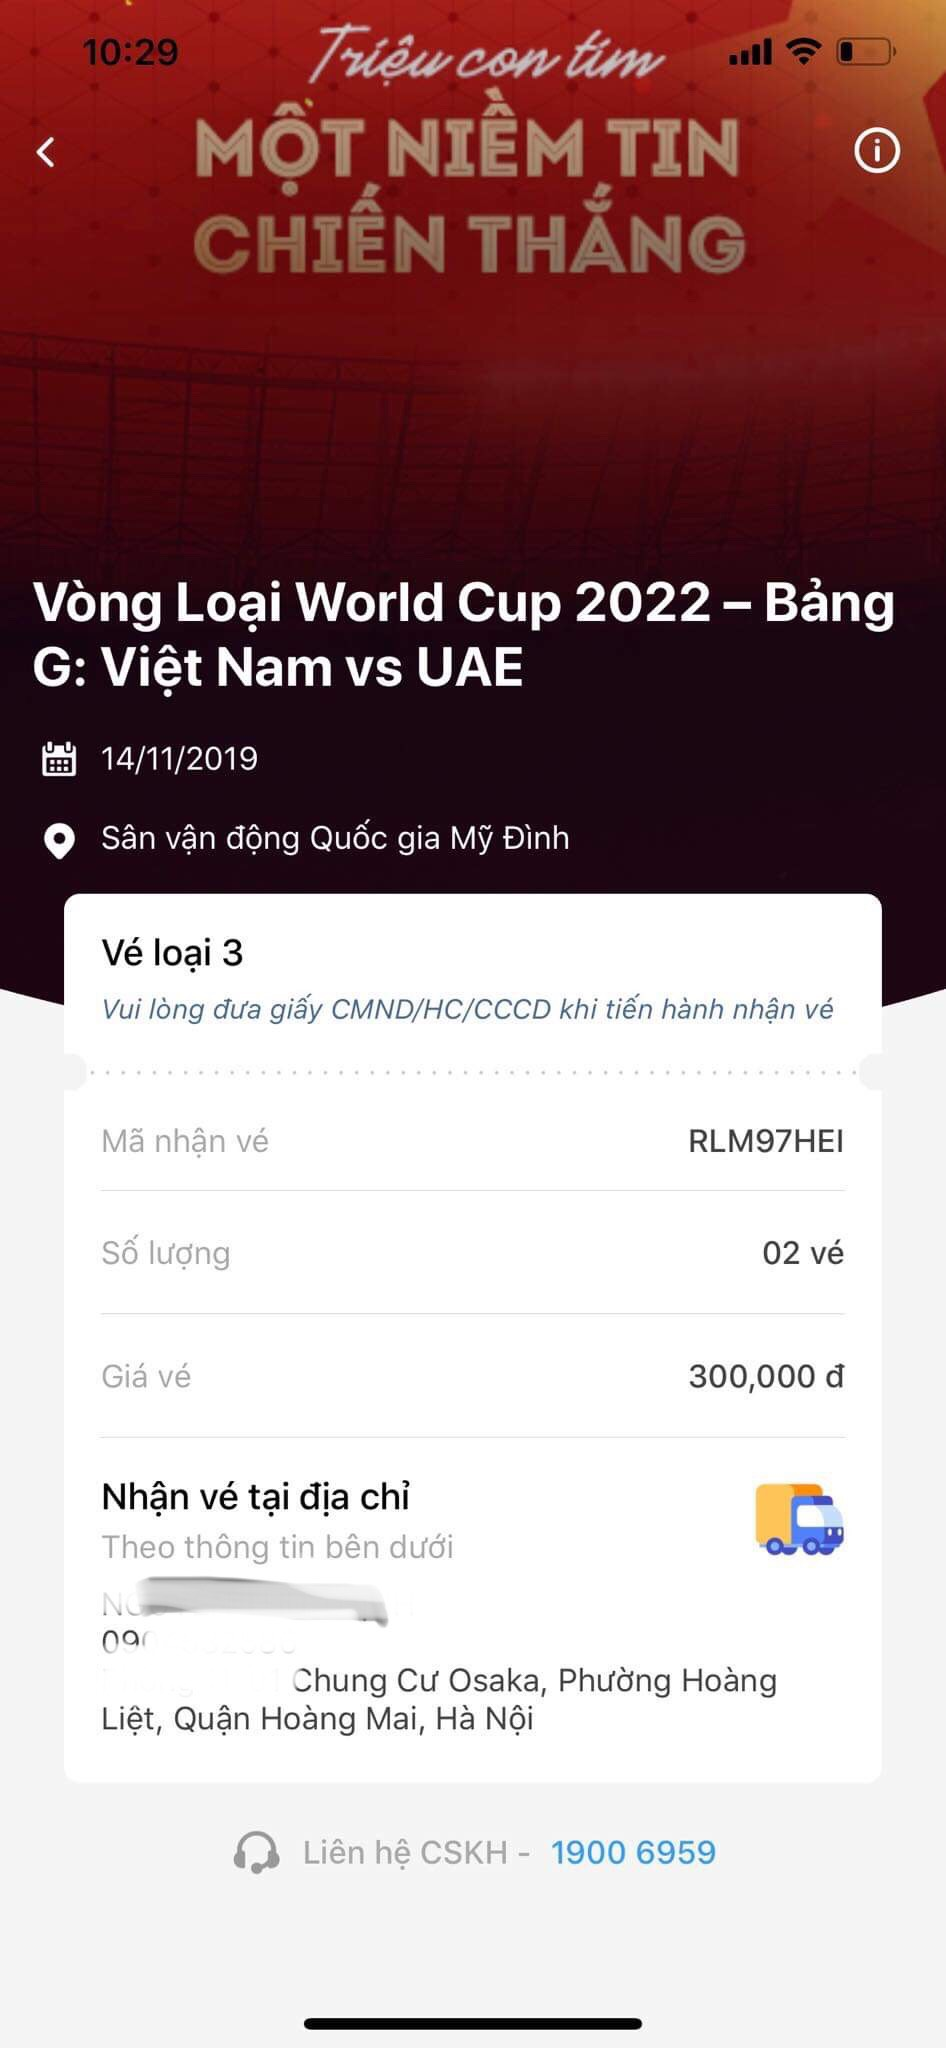 dt viet nam gay sot o vong loai world cup, ve tran dau voi uae het trong 2 phut hinh anh 1